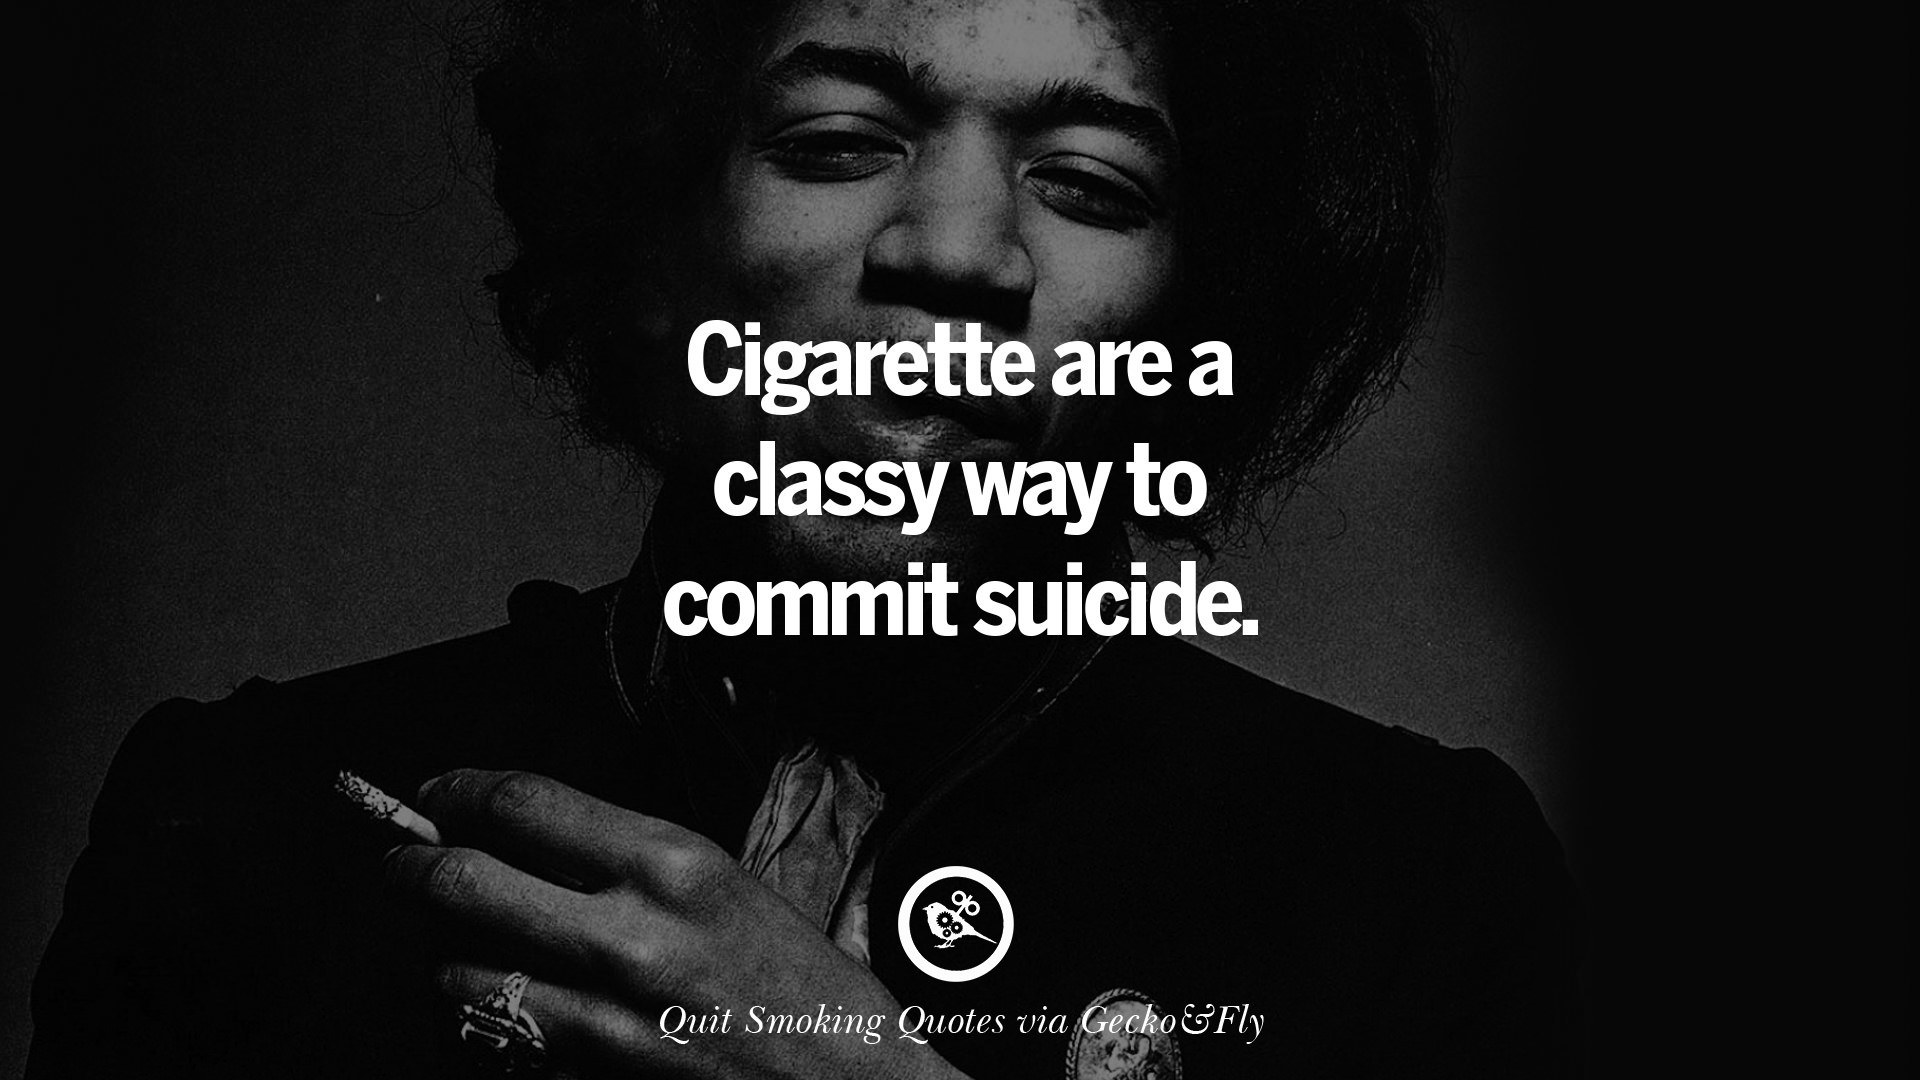 1920x1080 Cigarette are a classy way to commit suicide.